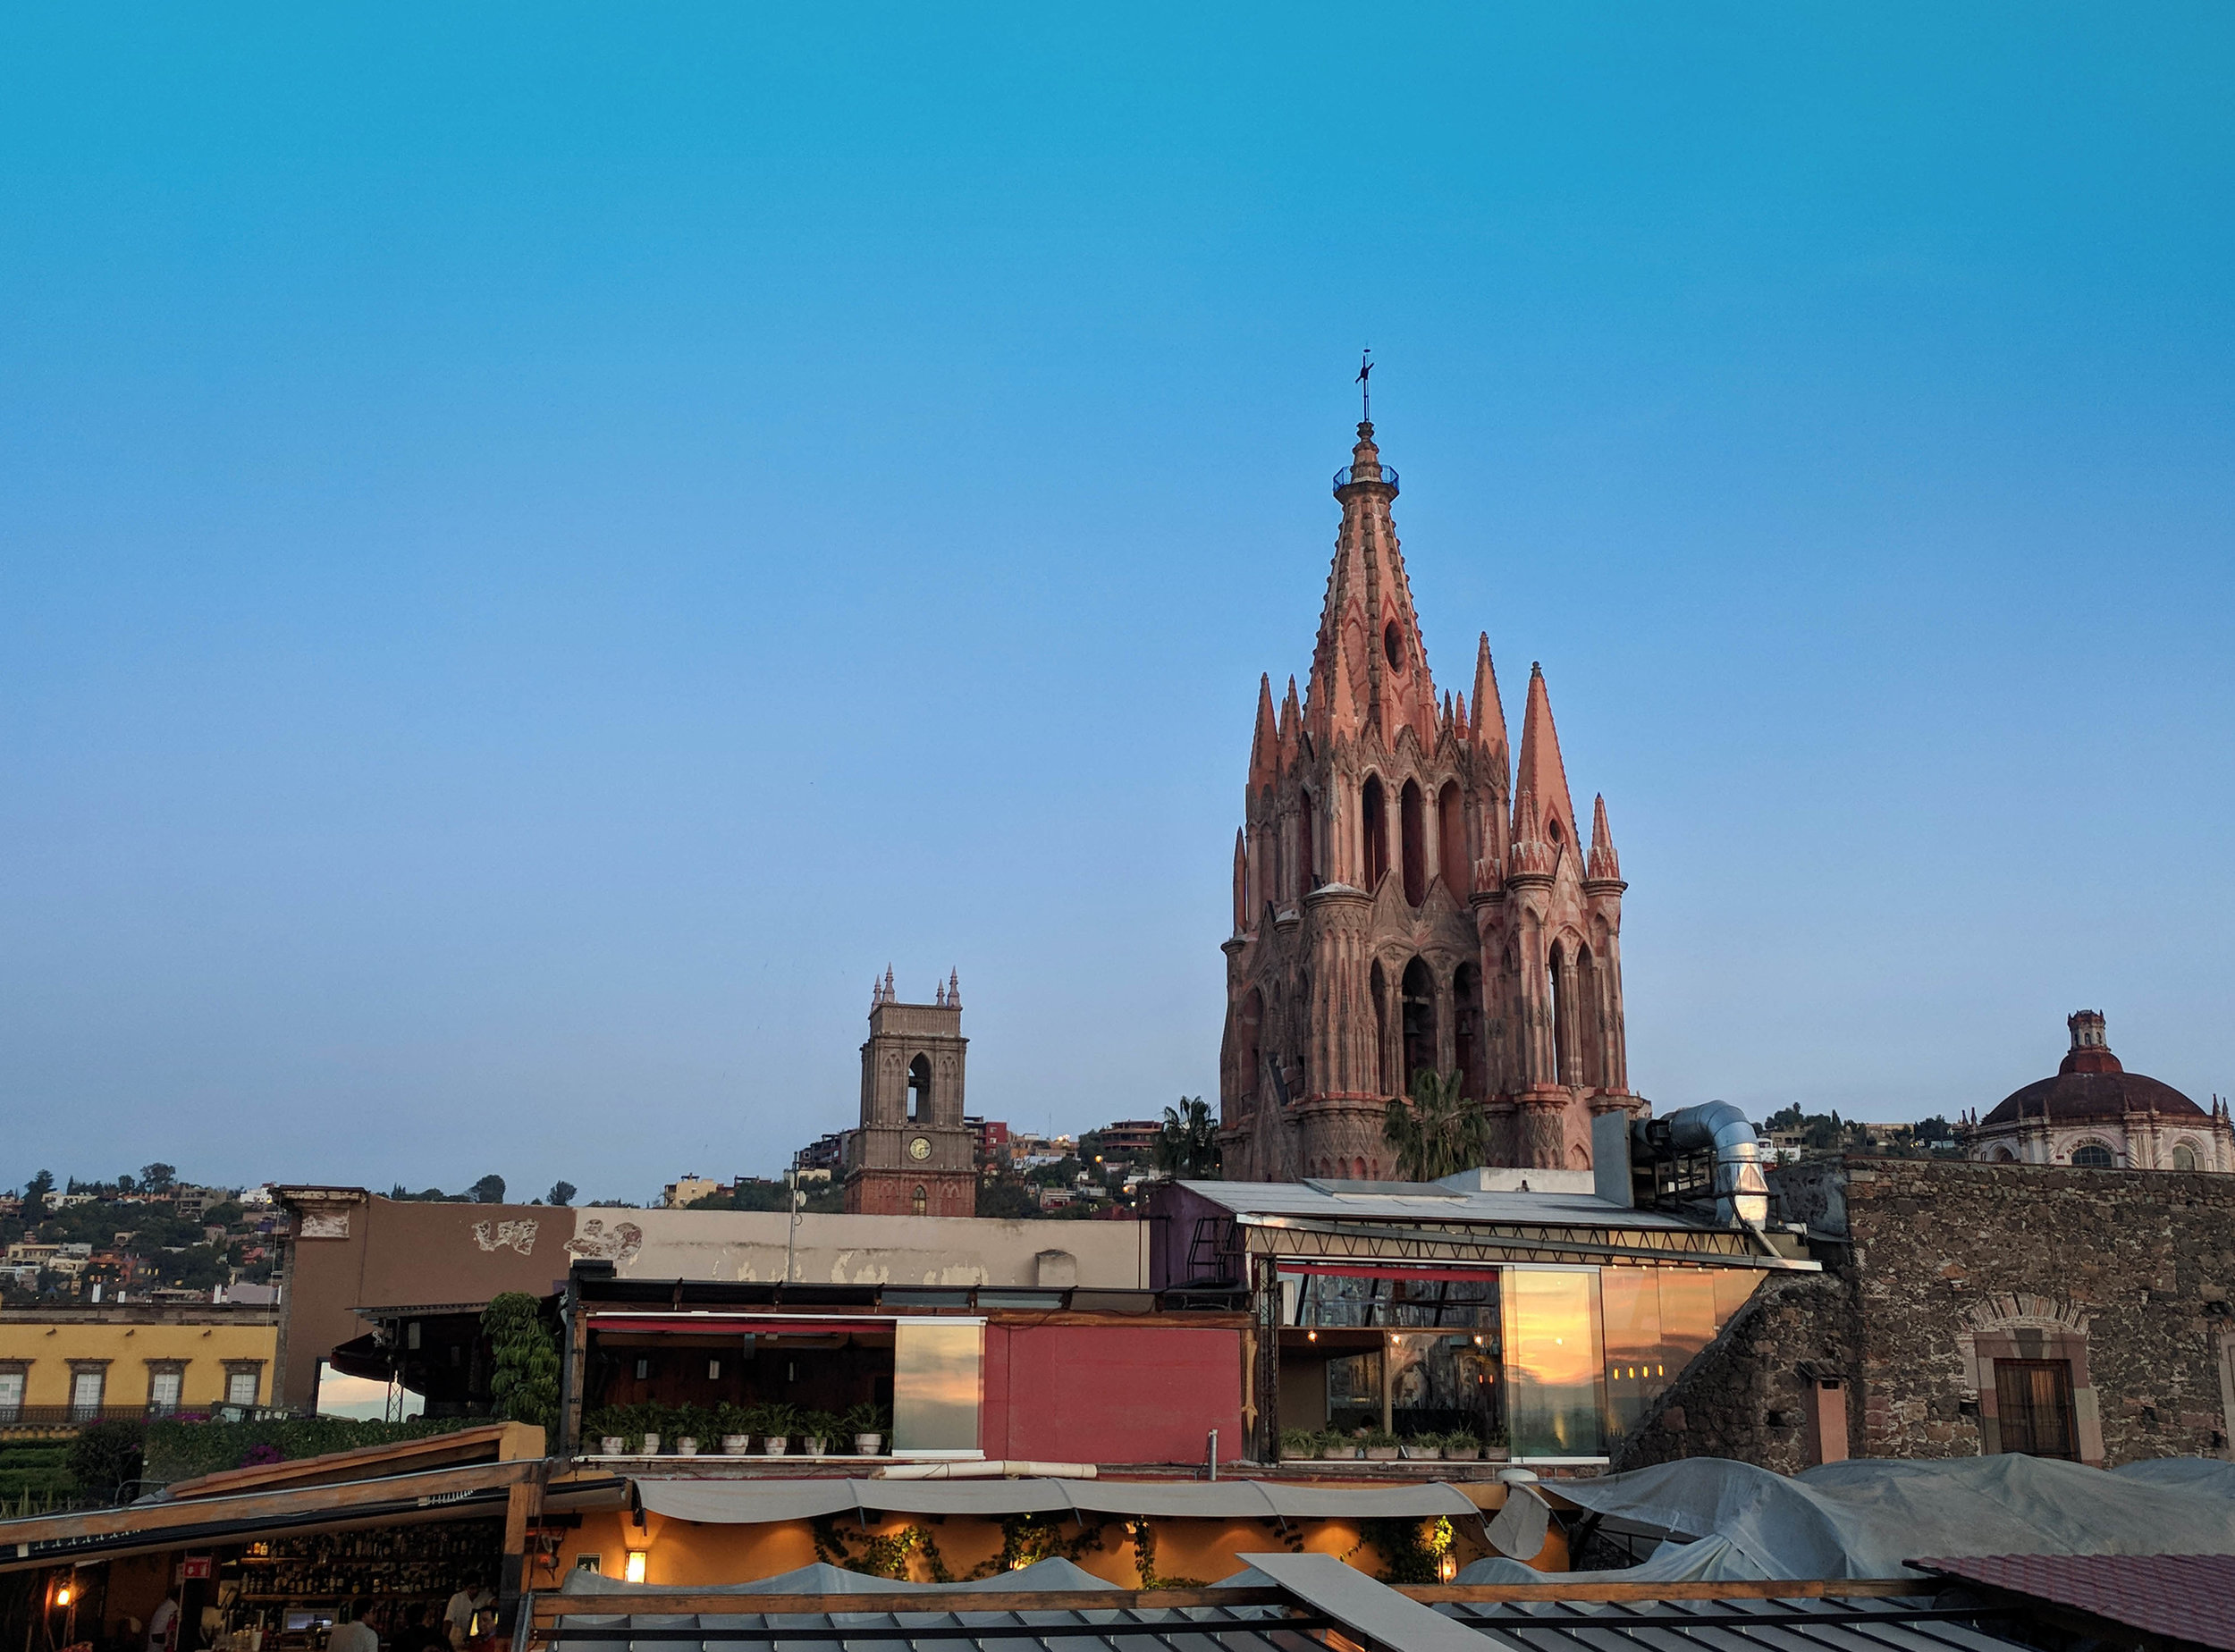 Three rooftop bars in a row. This is the view from La Chula, over Mama Mia and La Azotea